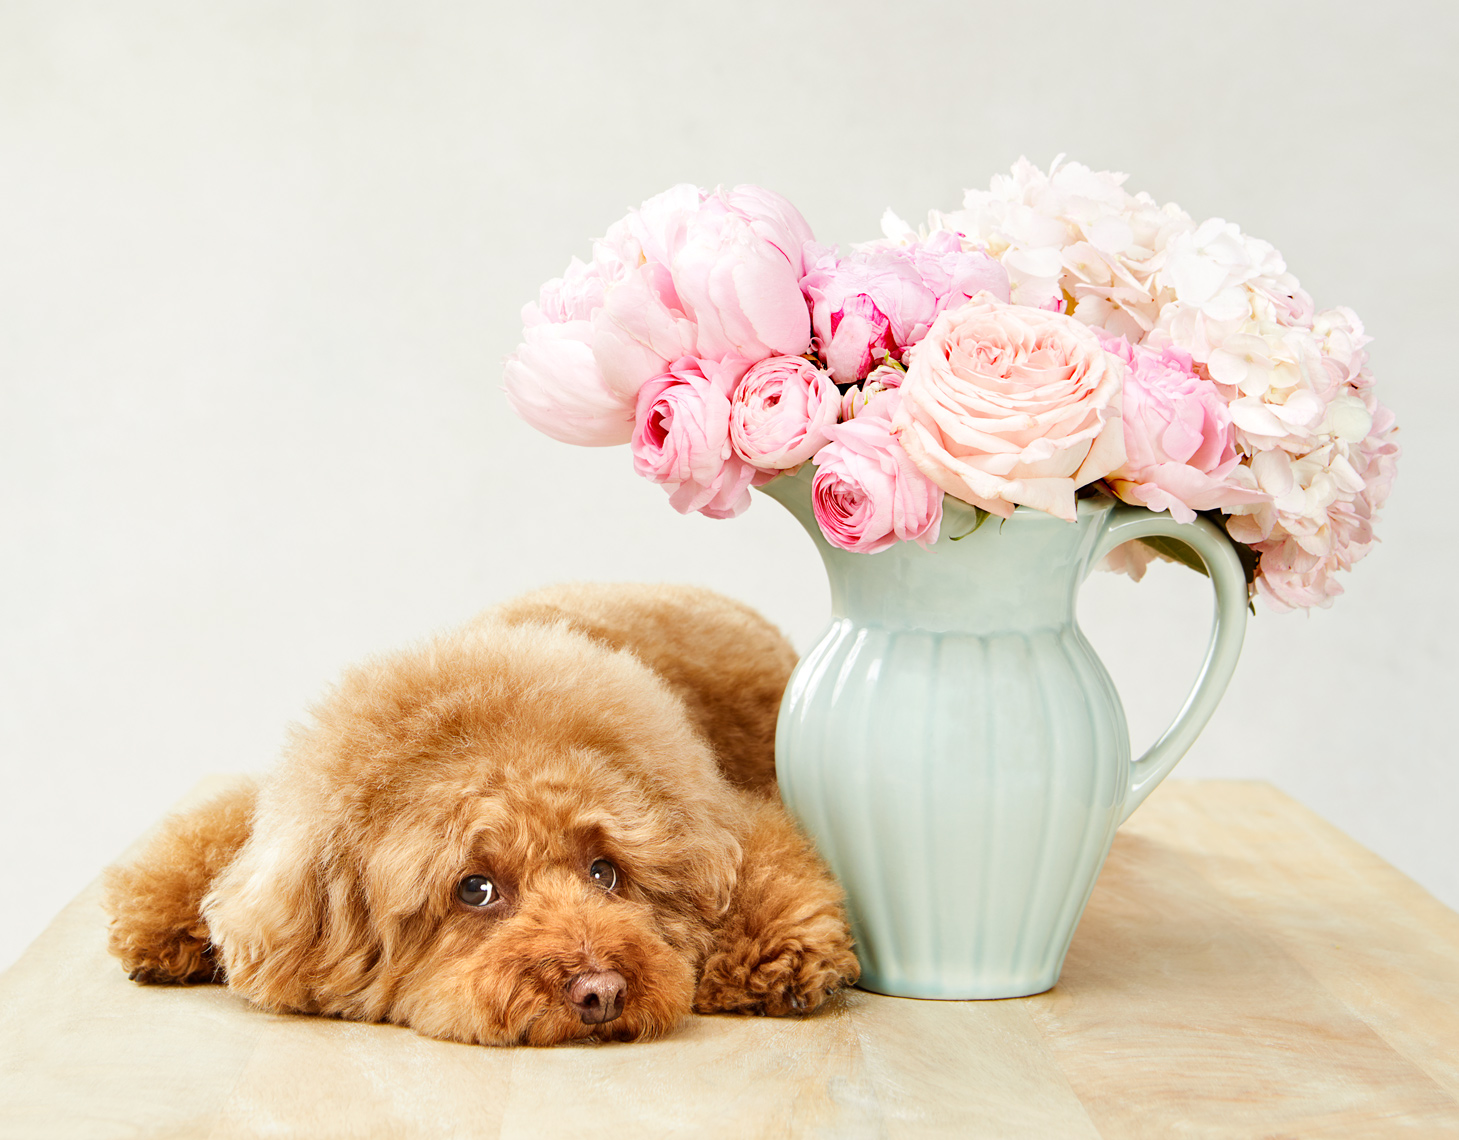 Poodle with flowers